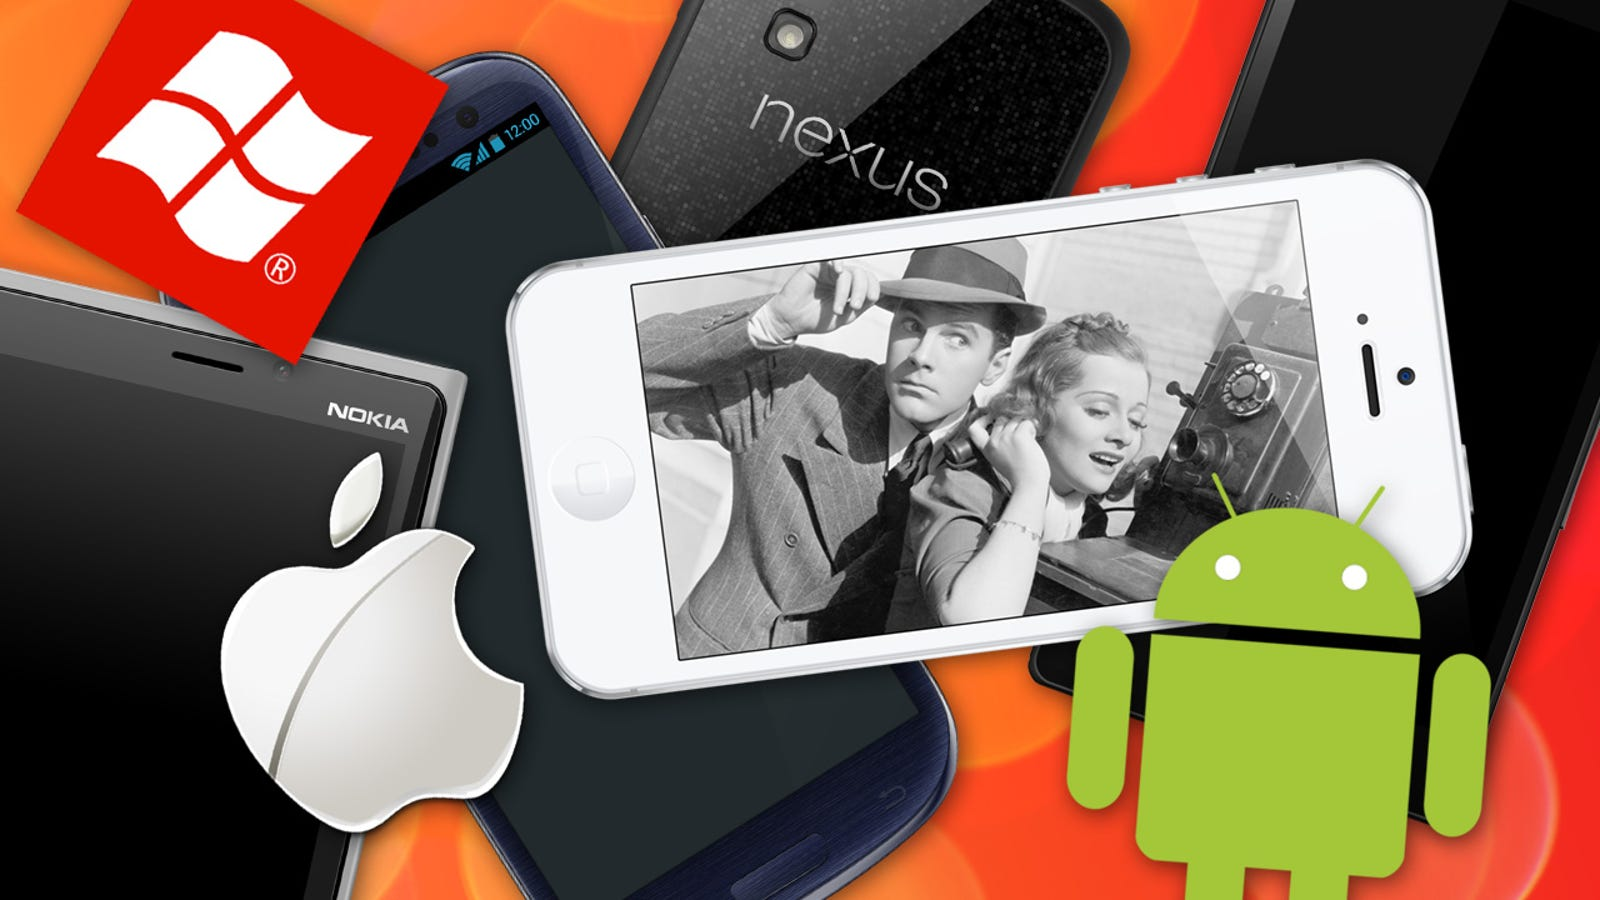 What's The Best Smartphone For People Who Aren't Good With